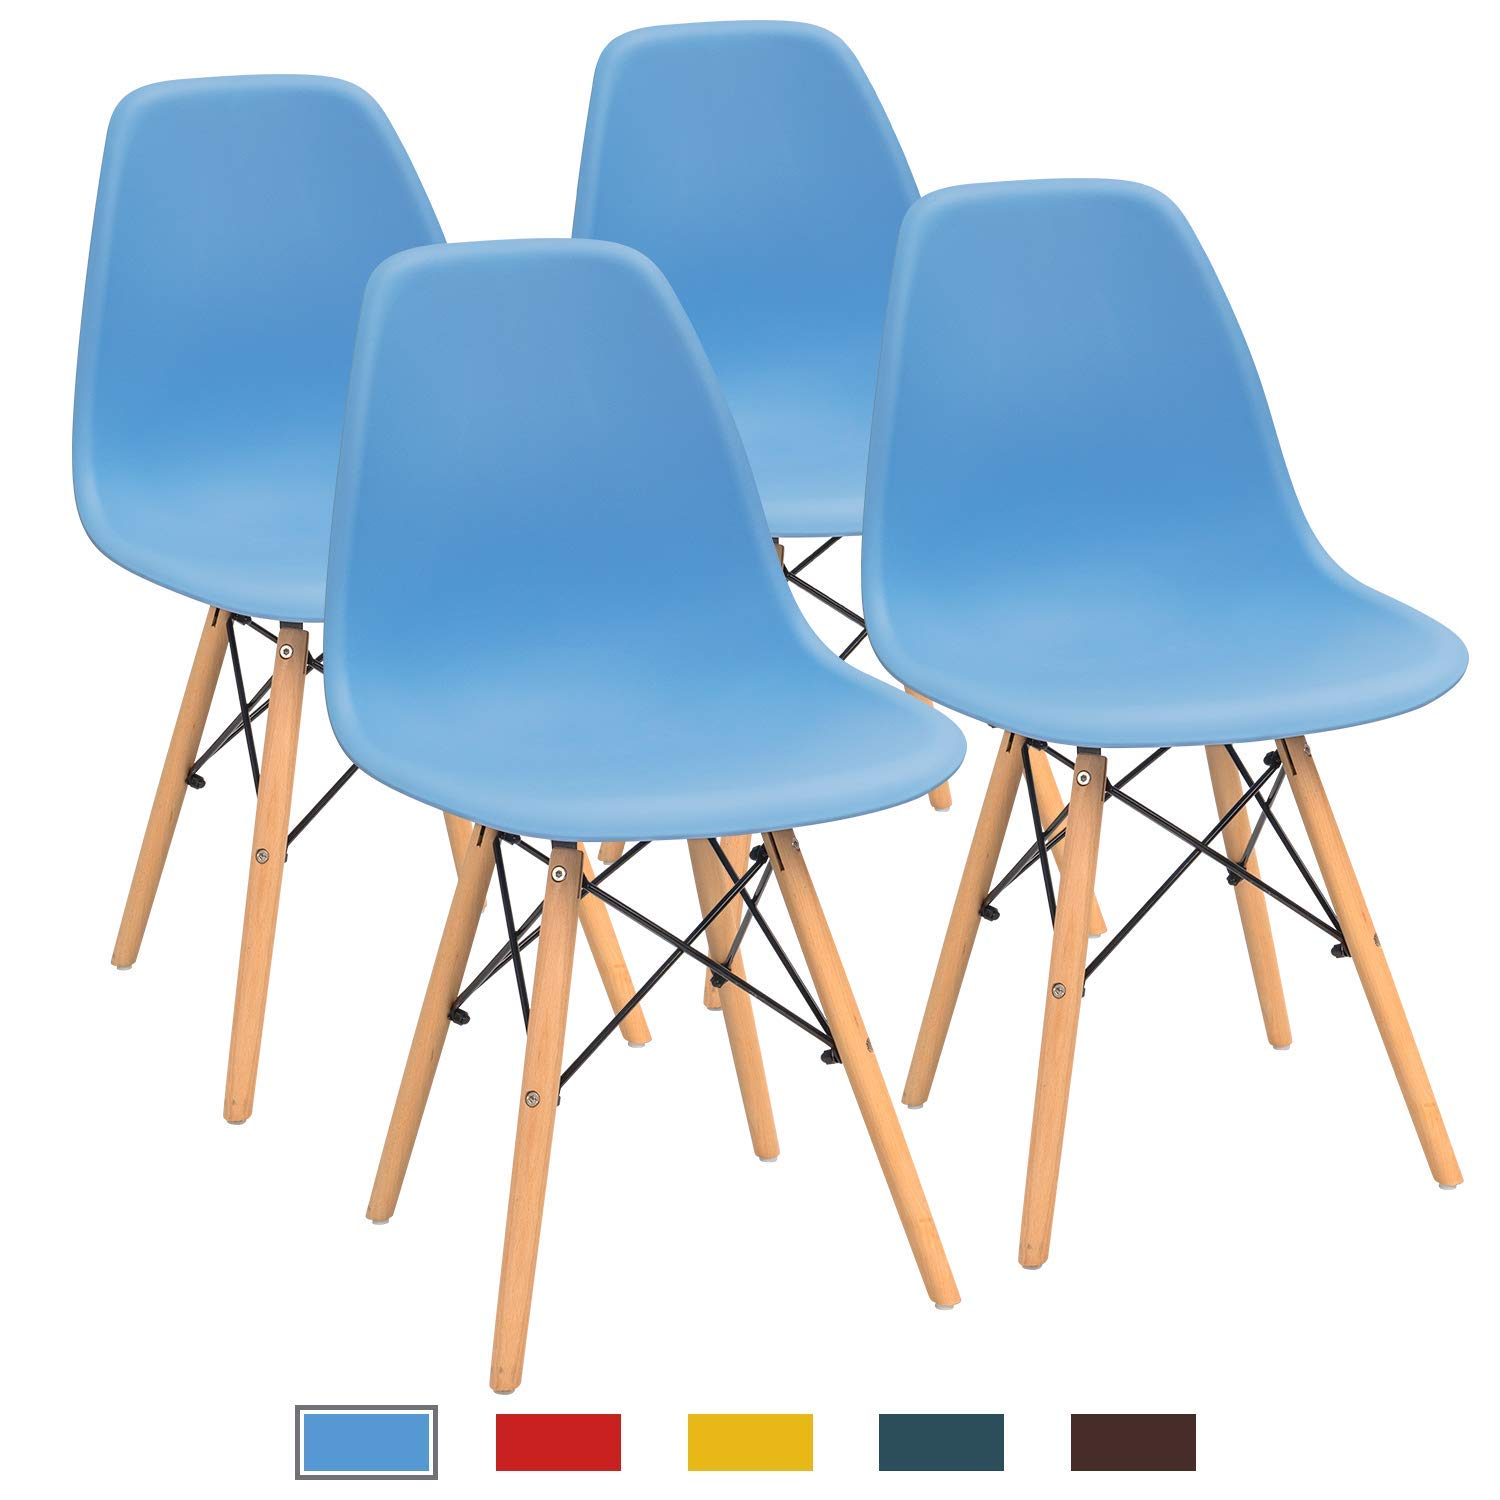 Furmax Pre Assembled Modern Style Dining Chair Mid Century White Modern DSW Chair, Shell Lounge Plastic Chair for Kitchen, Dining, Bedroom, Living Room Side Chairs(Set of 4) (Blue)